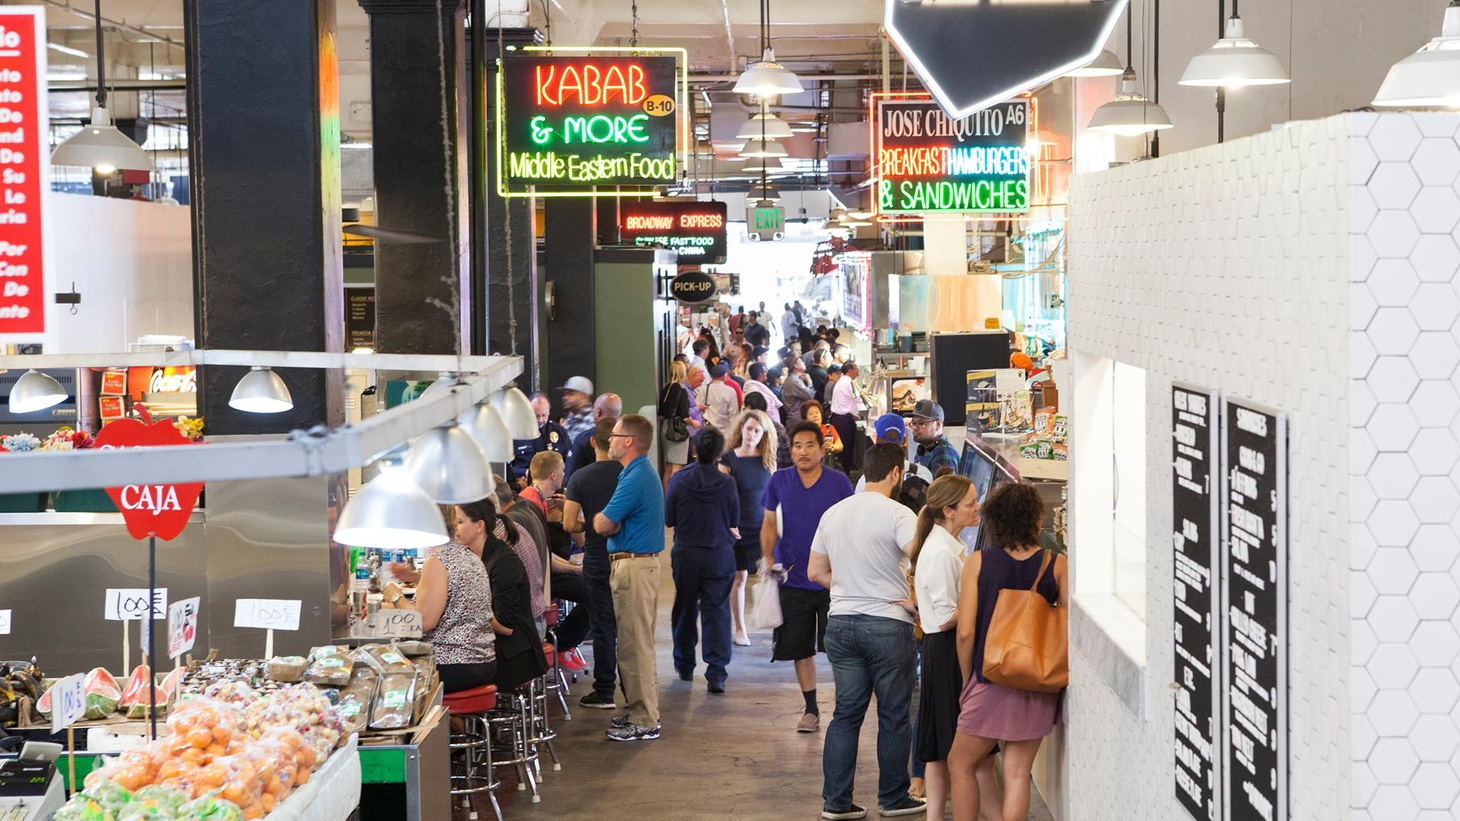 The cuisine and the look of Grand Central Market are changing; End of an era? Or a mix of vendors and cultures that shows LA at its best? Plus, we take a look at how software is revolutionizing skyscrapers and lawn wars in a California suburb.